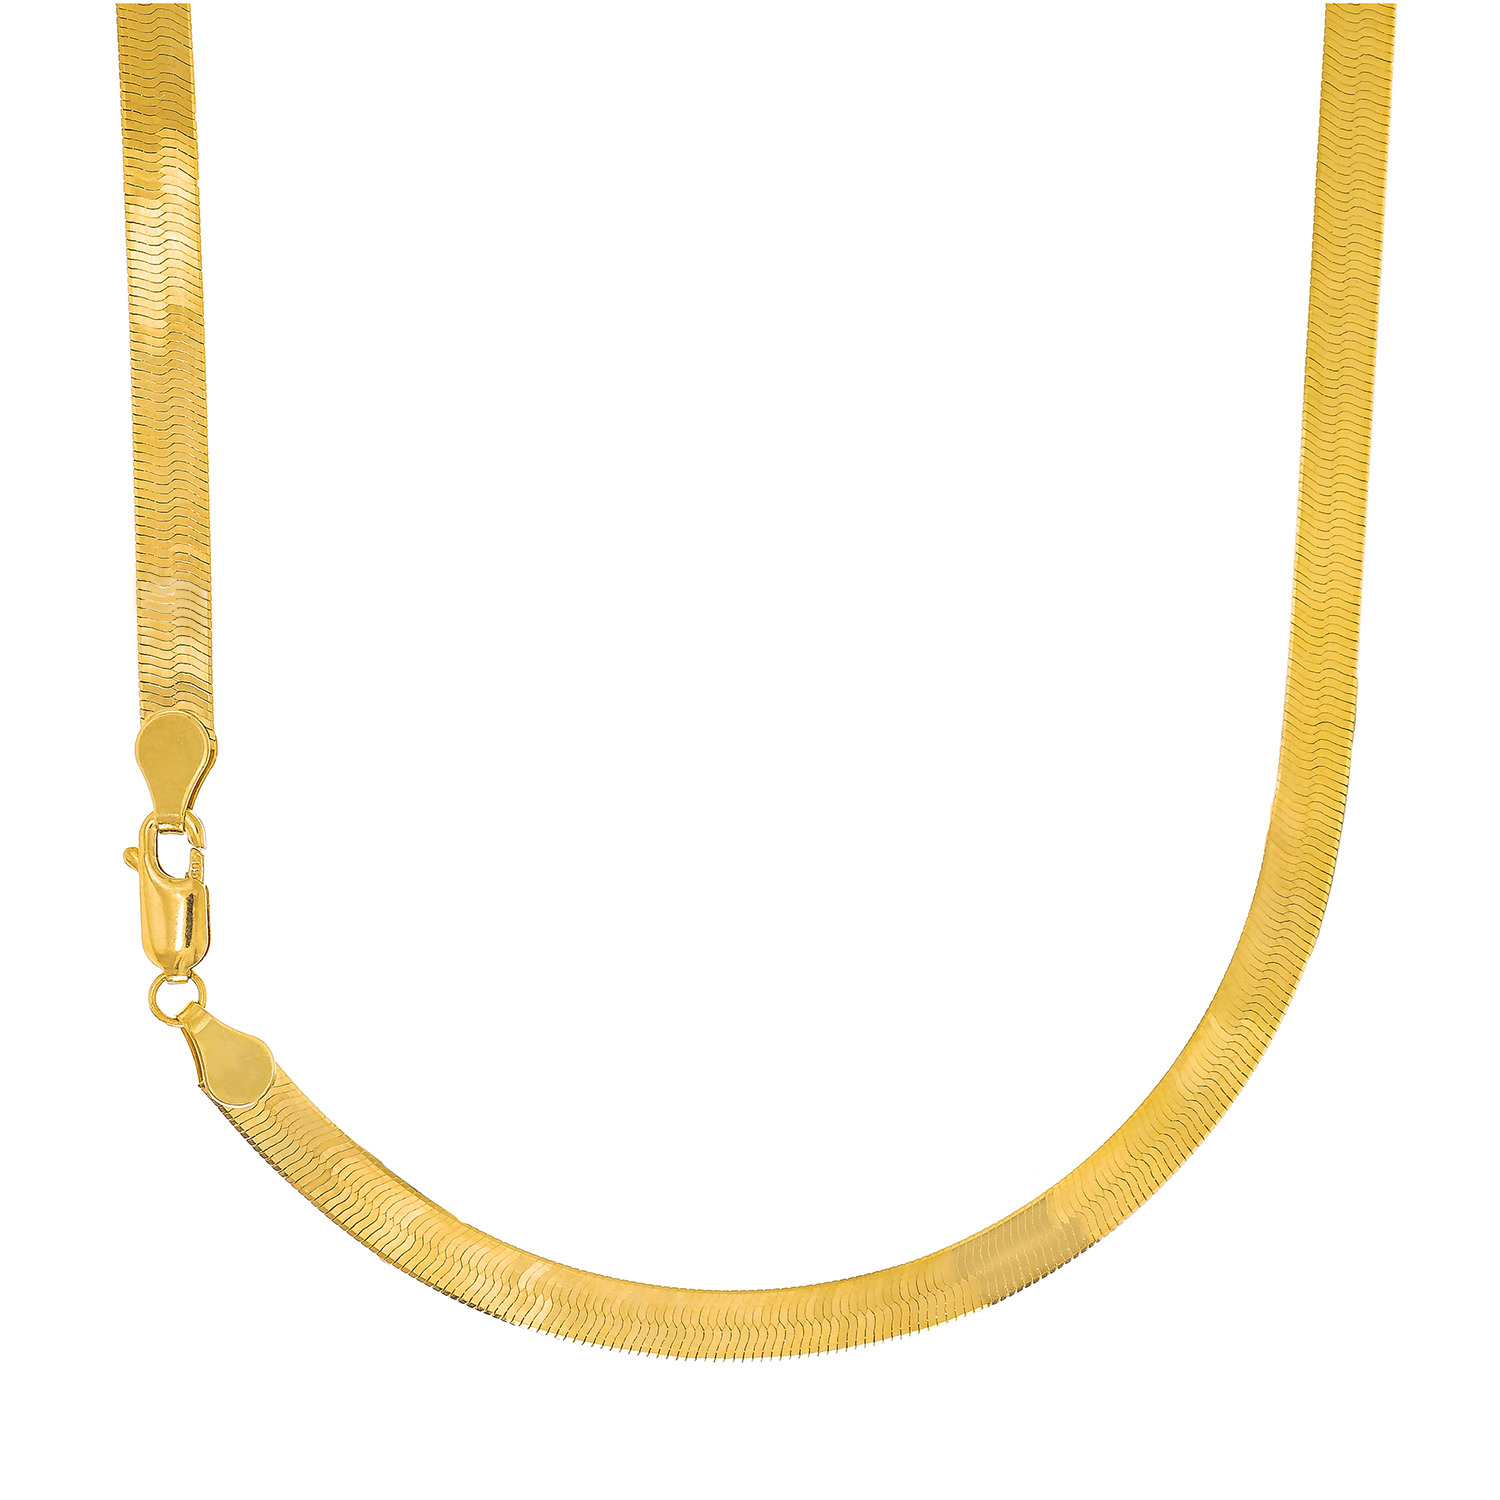 14k Solid Yellow Gold 5mm Super Flexible Silky Imperial Herringbone Necklace- 16 18 20 22 24 26 by JewelStop